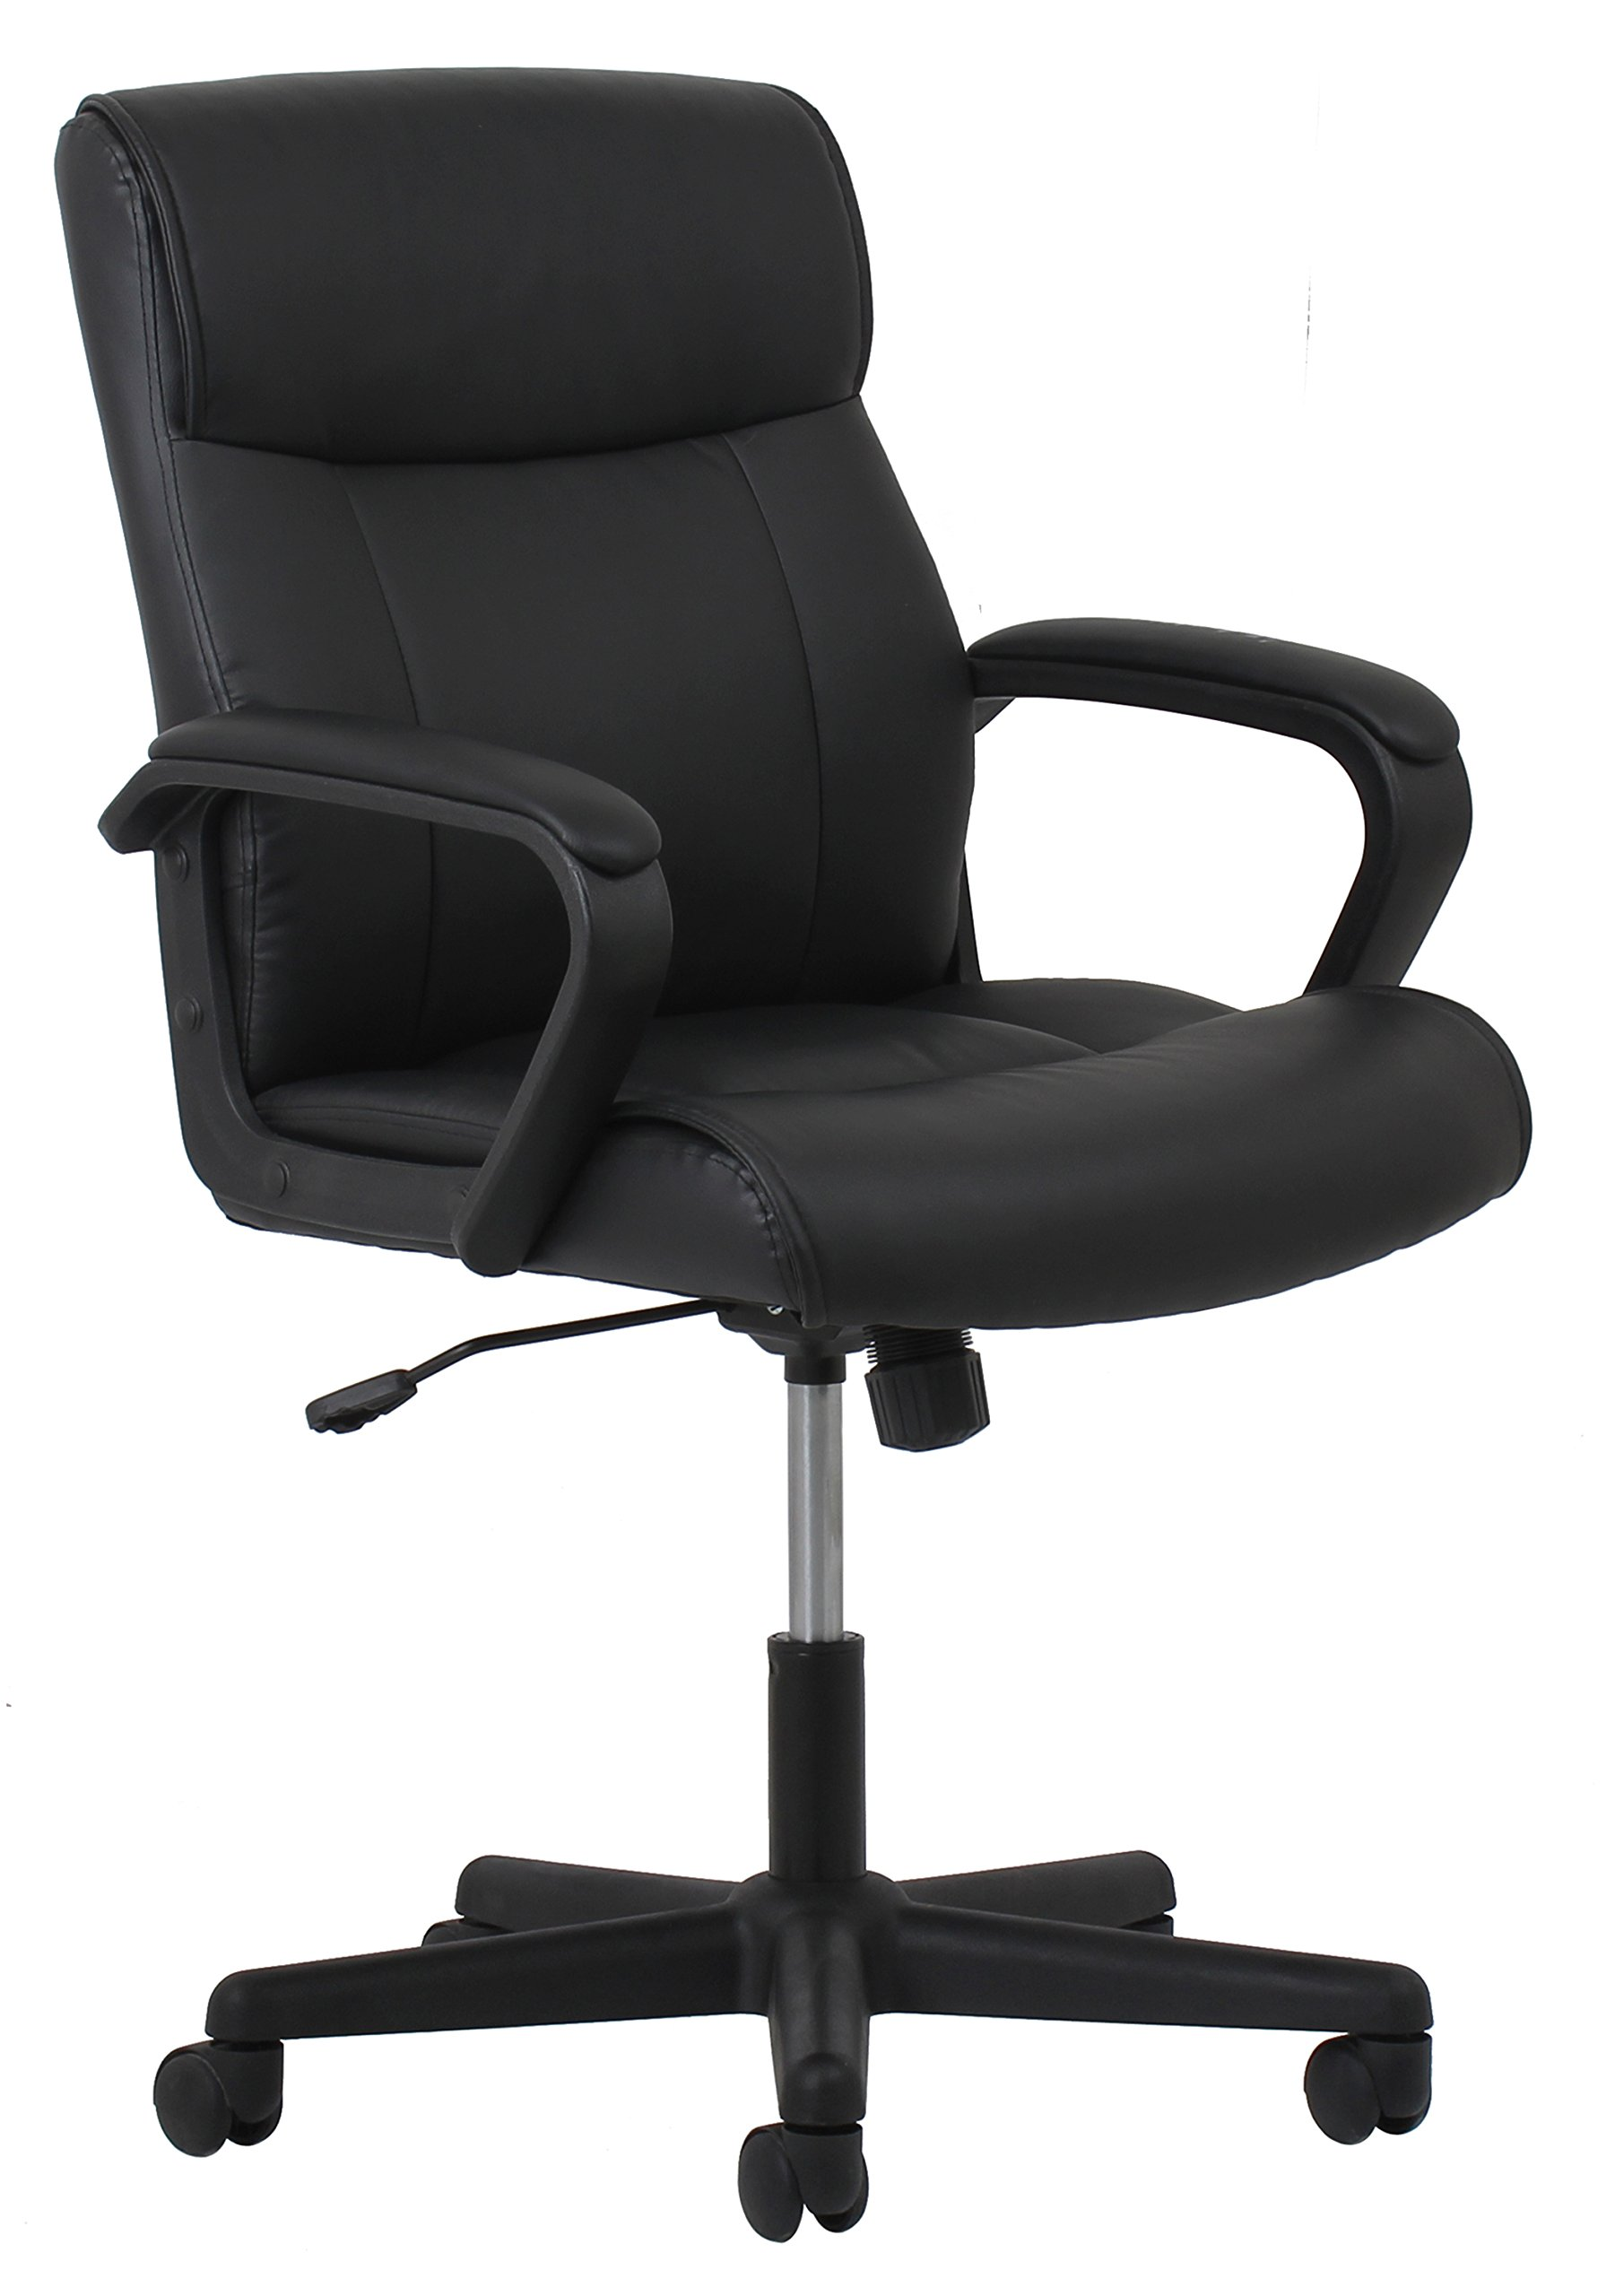 Essentials Leather Executive Office/Computer Chair - Ergonomic Swivel Chair, Black by OFM